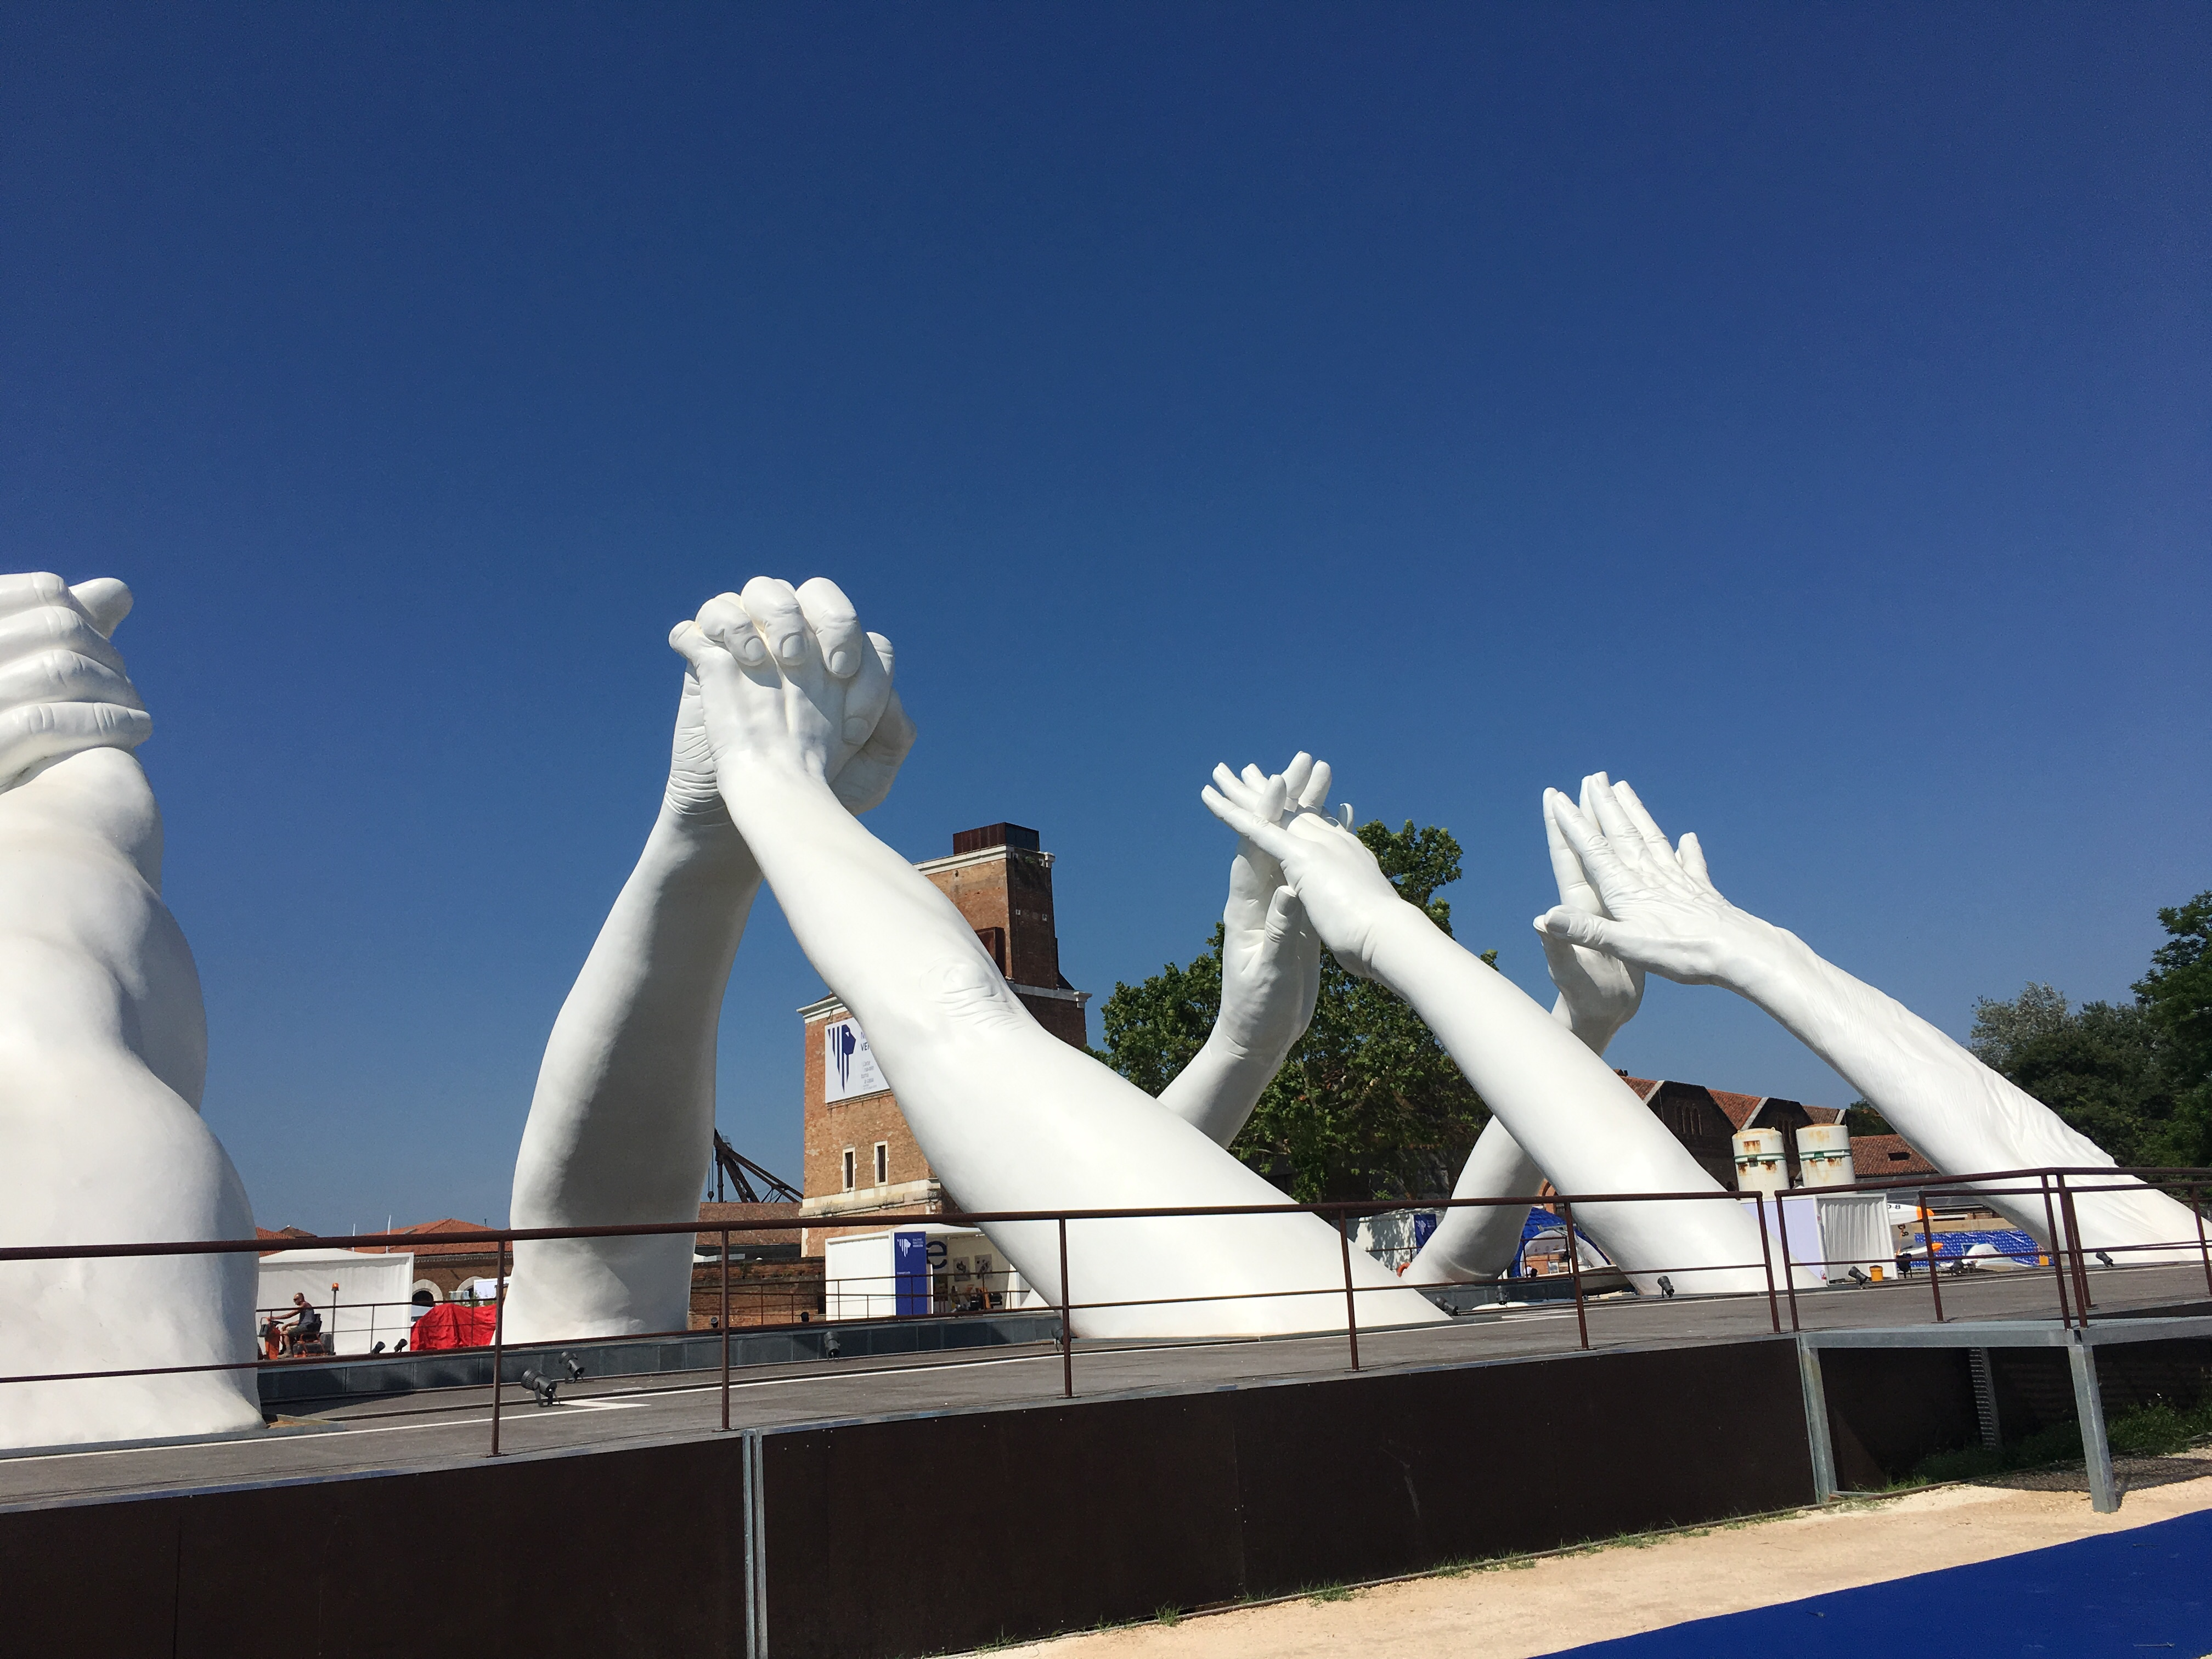 Lorenzo Quinn's 'Building Bridges' installed at one of the old dry docks east of Arsenale, Venezia